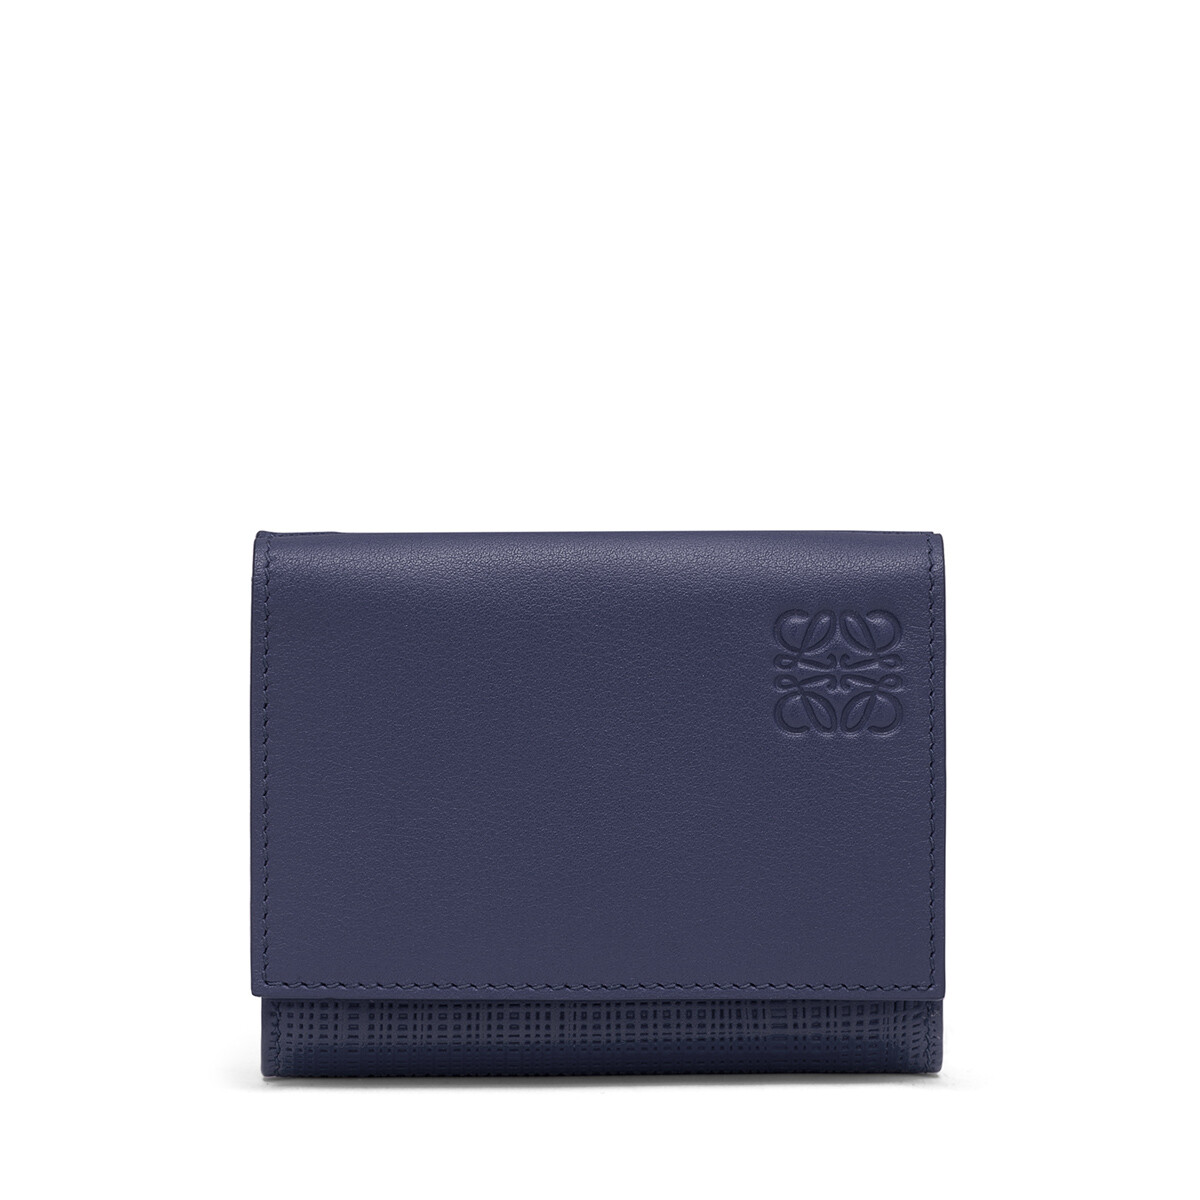 LOEWE Linen Trifold Wallet Navy Blue front